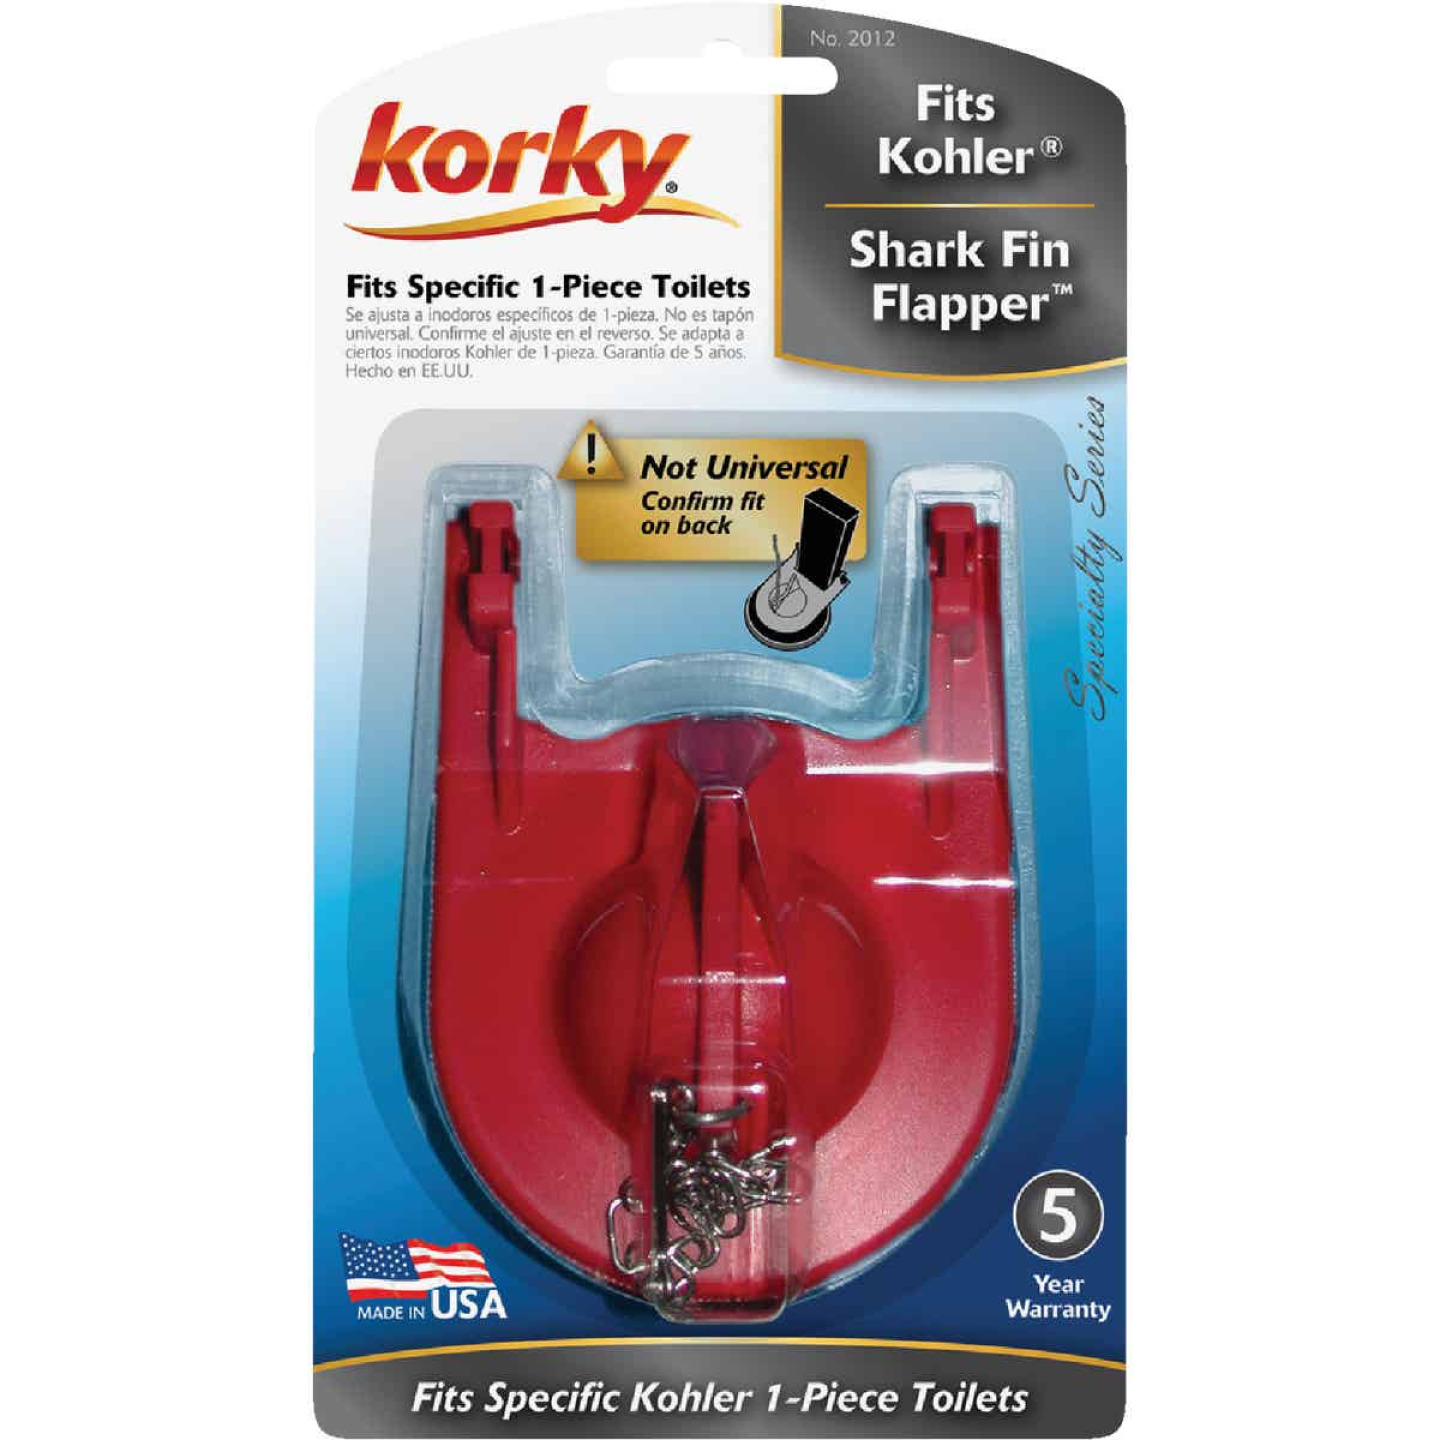 Korky Kohler Rubber Shark-Fin Toilet Flapper For 1-Pc. Toilet Image 2